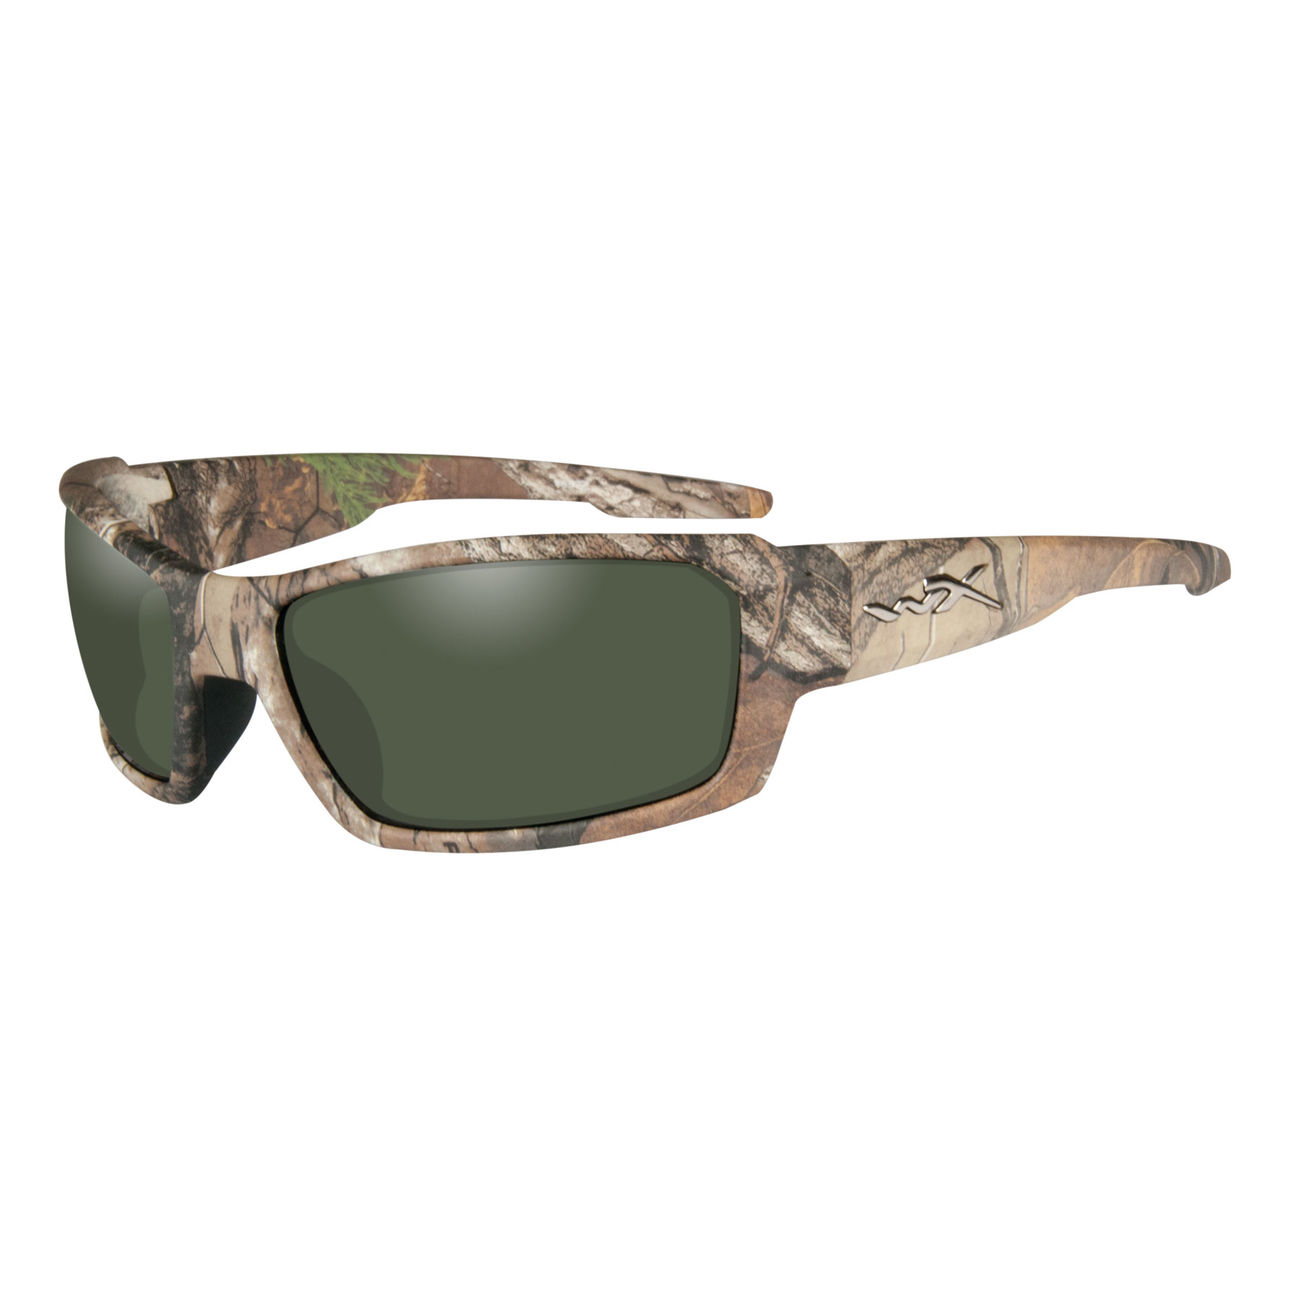 Wiley X Brille Rebel Realtree Xtra Camo rauchgrün polarisiert 1